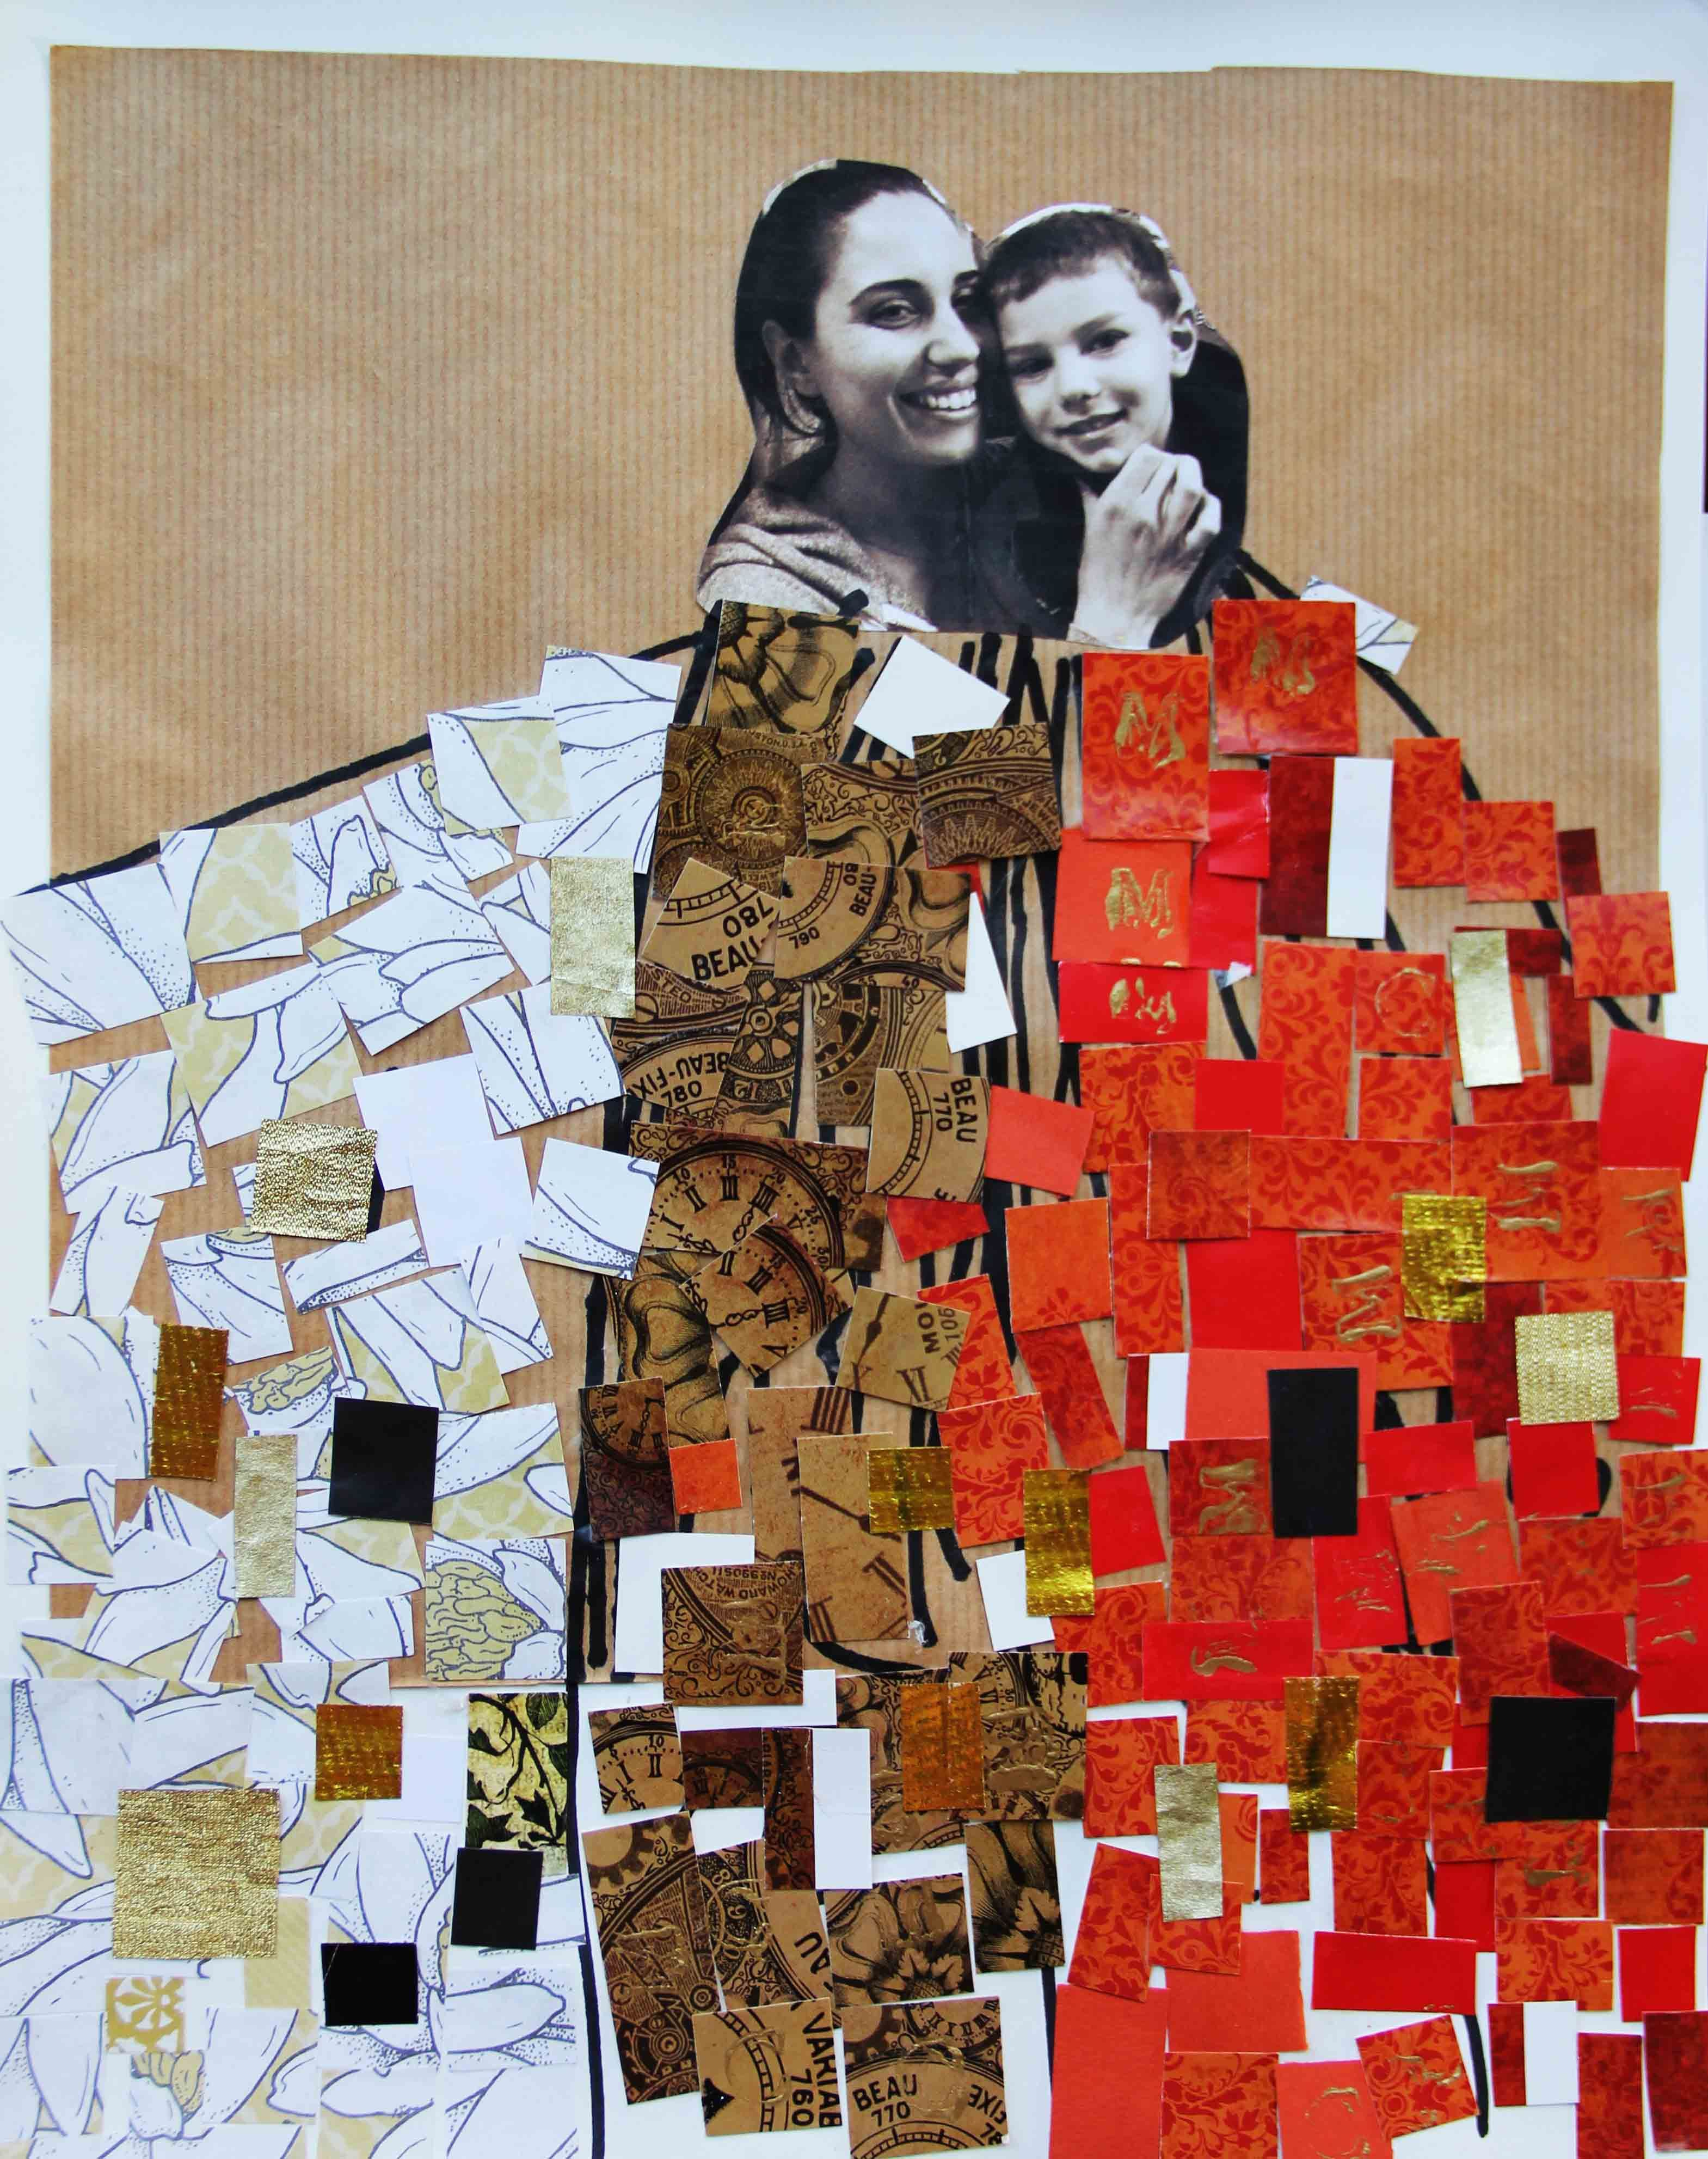 Mothers Day fine art project for kids - Gustav Klimt on www.ArtBoxAtelier.com. Project created by 4 and 5 years old students of PS 110 Monitor Street, Brooklyn, New York